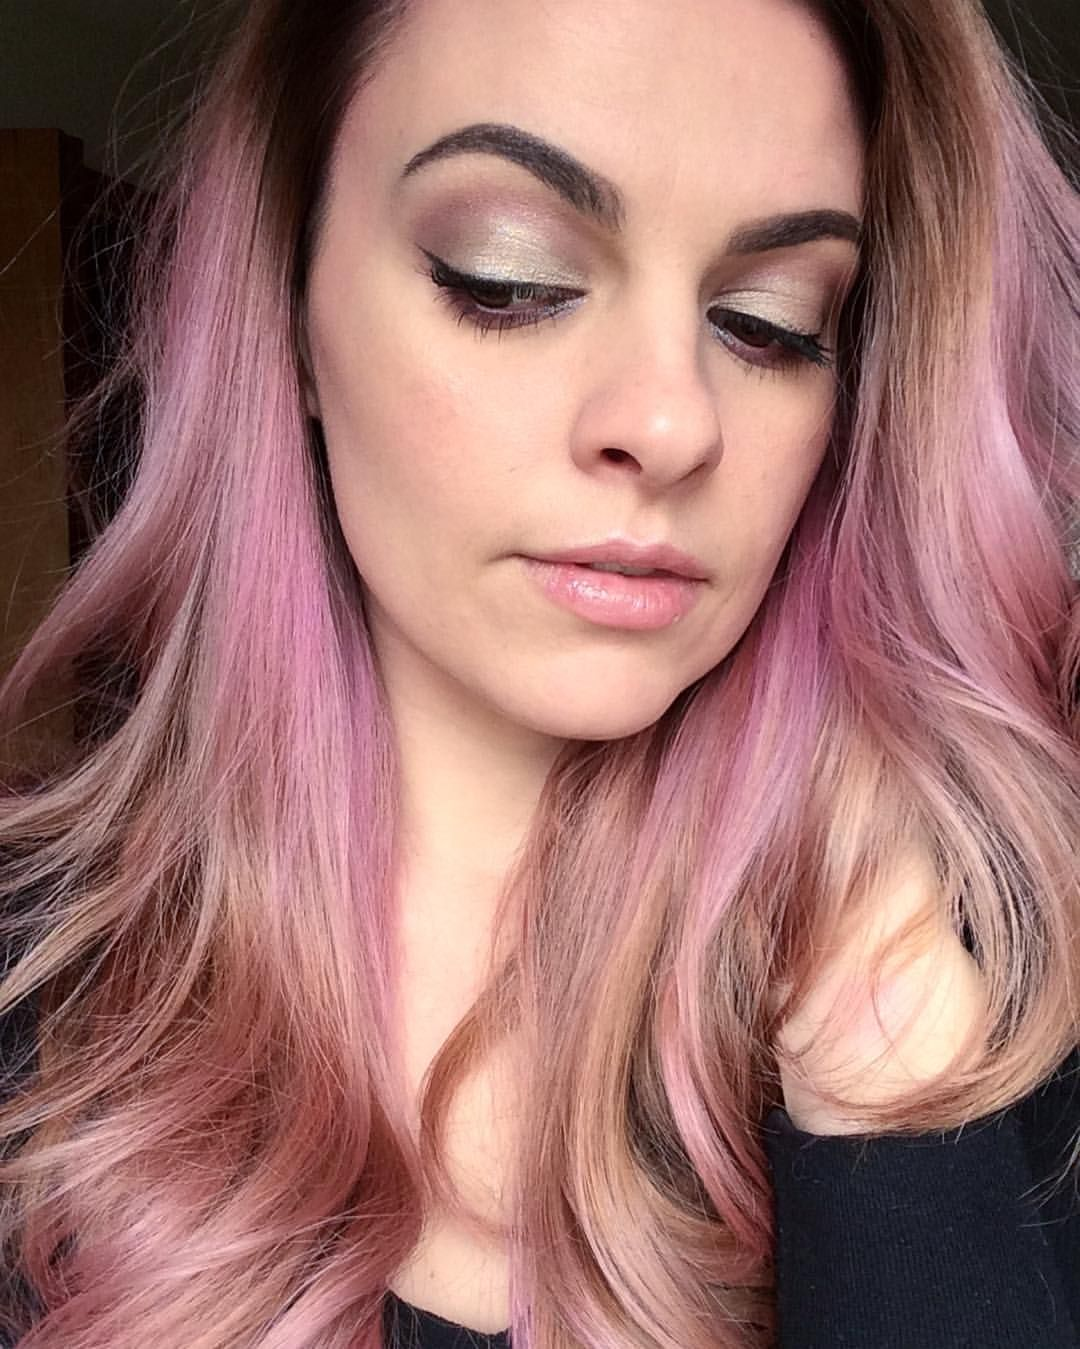 """36 Likes, 3 Comments - Jamie Waylein (@madeyewblush) on Instagram: """"When I'm in a pink mood!  . . . •Sassy and Infatuated mineral pigments •Palette 1 (Sincere &…"""""""